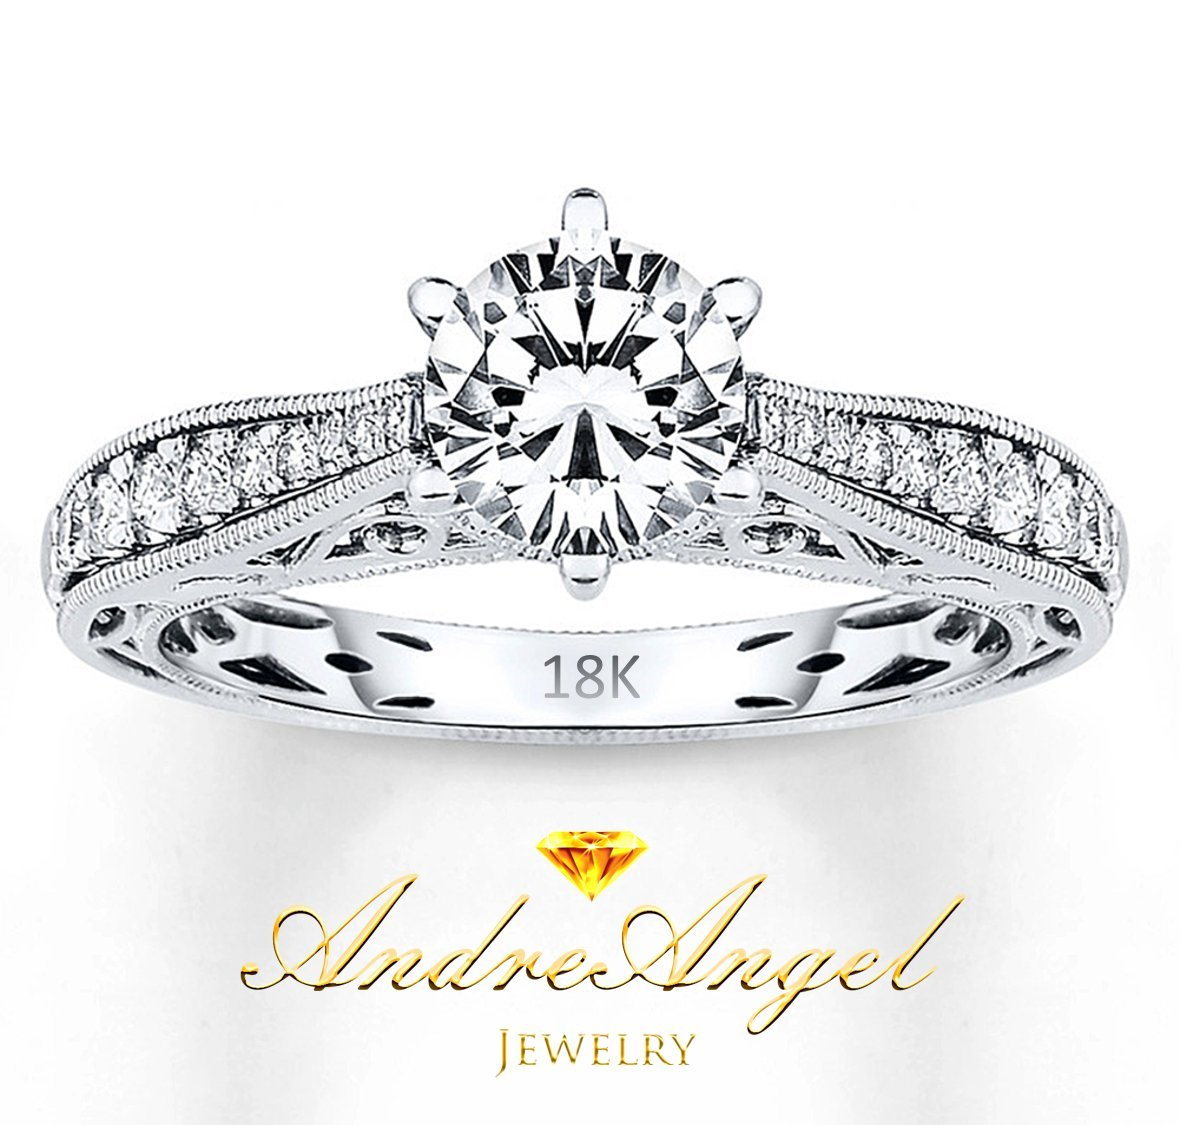 AndreAngel Women Ring White Gold 18K Princess Cut/Lab Diamond 6 mm Carat Cubic Zirconia AAA+/Bridal Birthday Dating Gift Anniversary Promise Engagement or Wedding Mother's Day (6) by AndreAngel (Image #6)